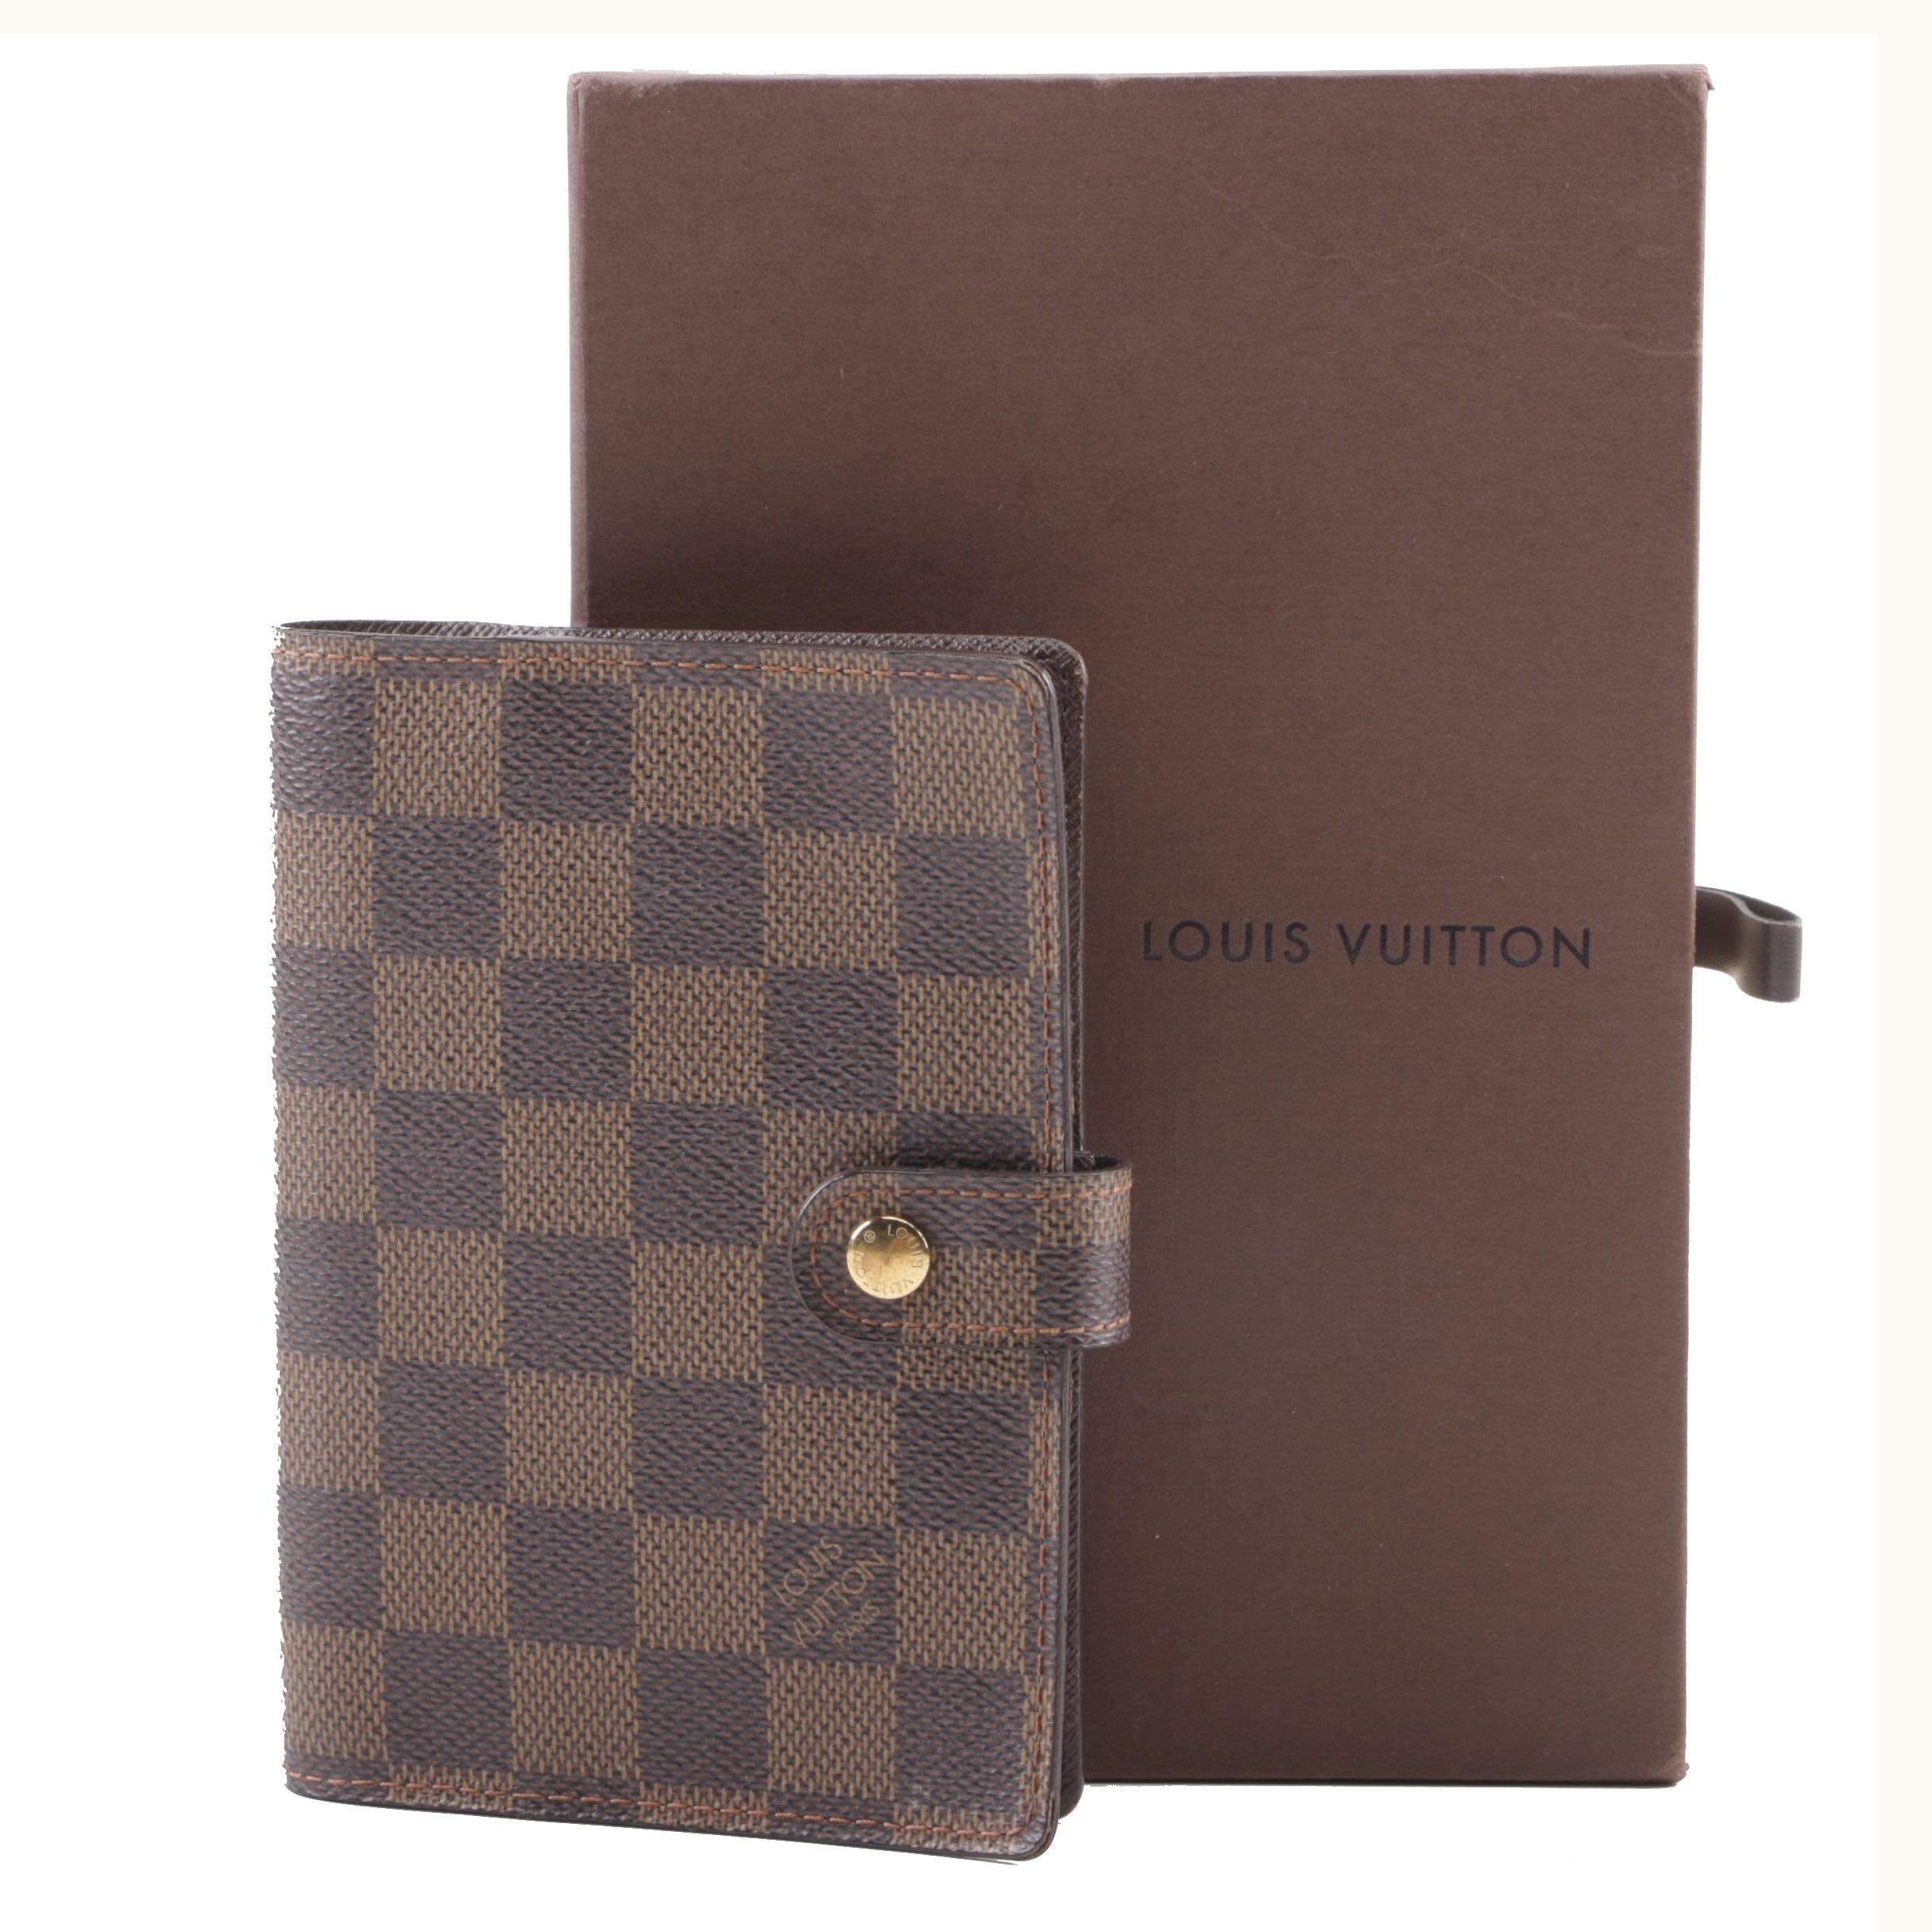 2005 Louis Vuitton Paris Damier Ebene Small Agenda Cover